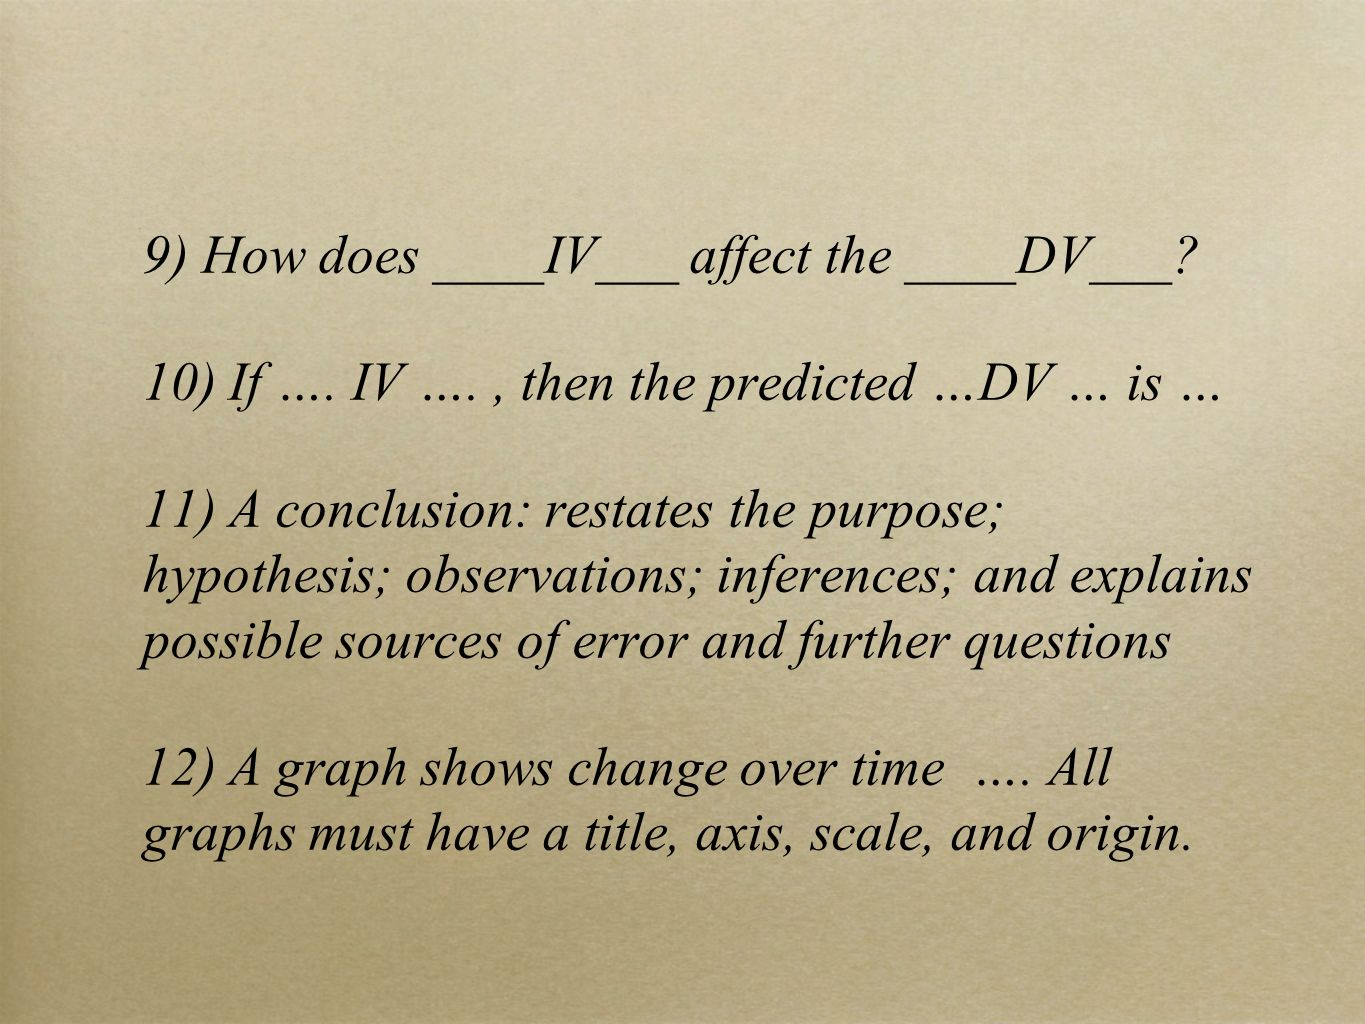 9) How does ____IV___ affect the ____DV___